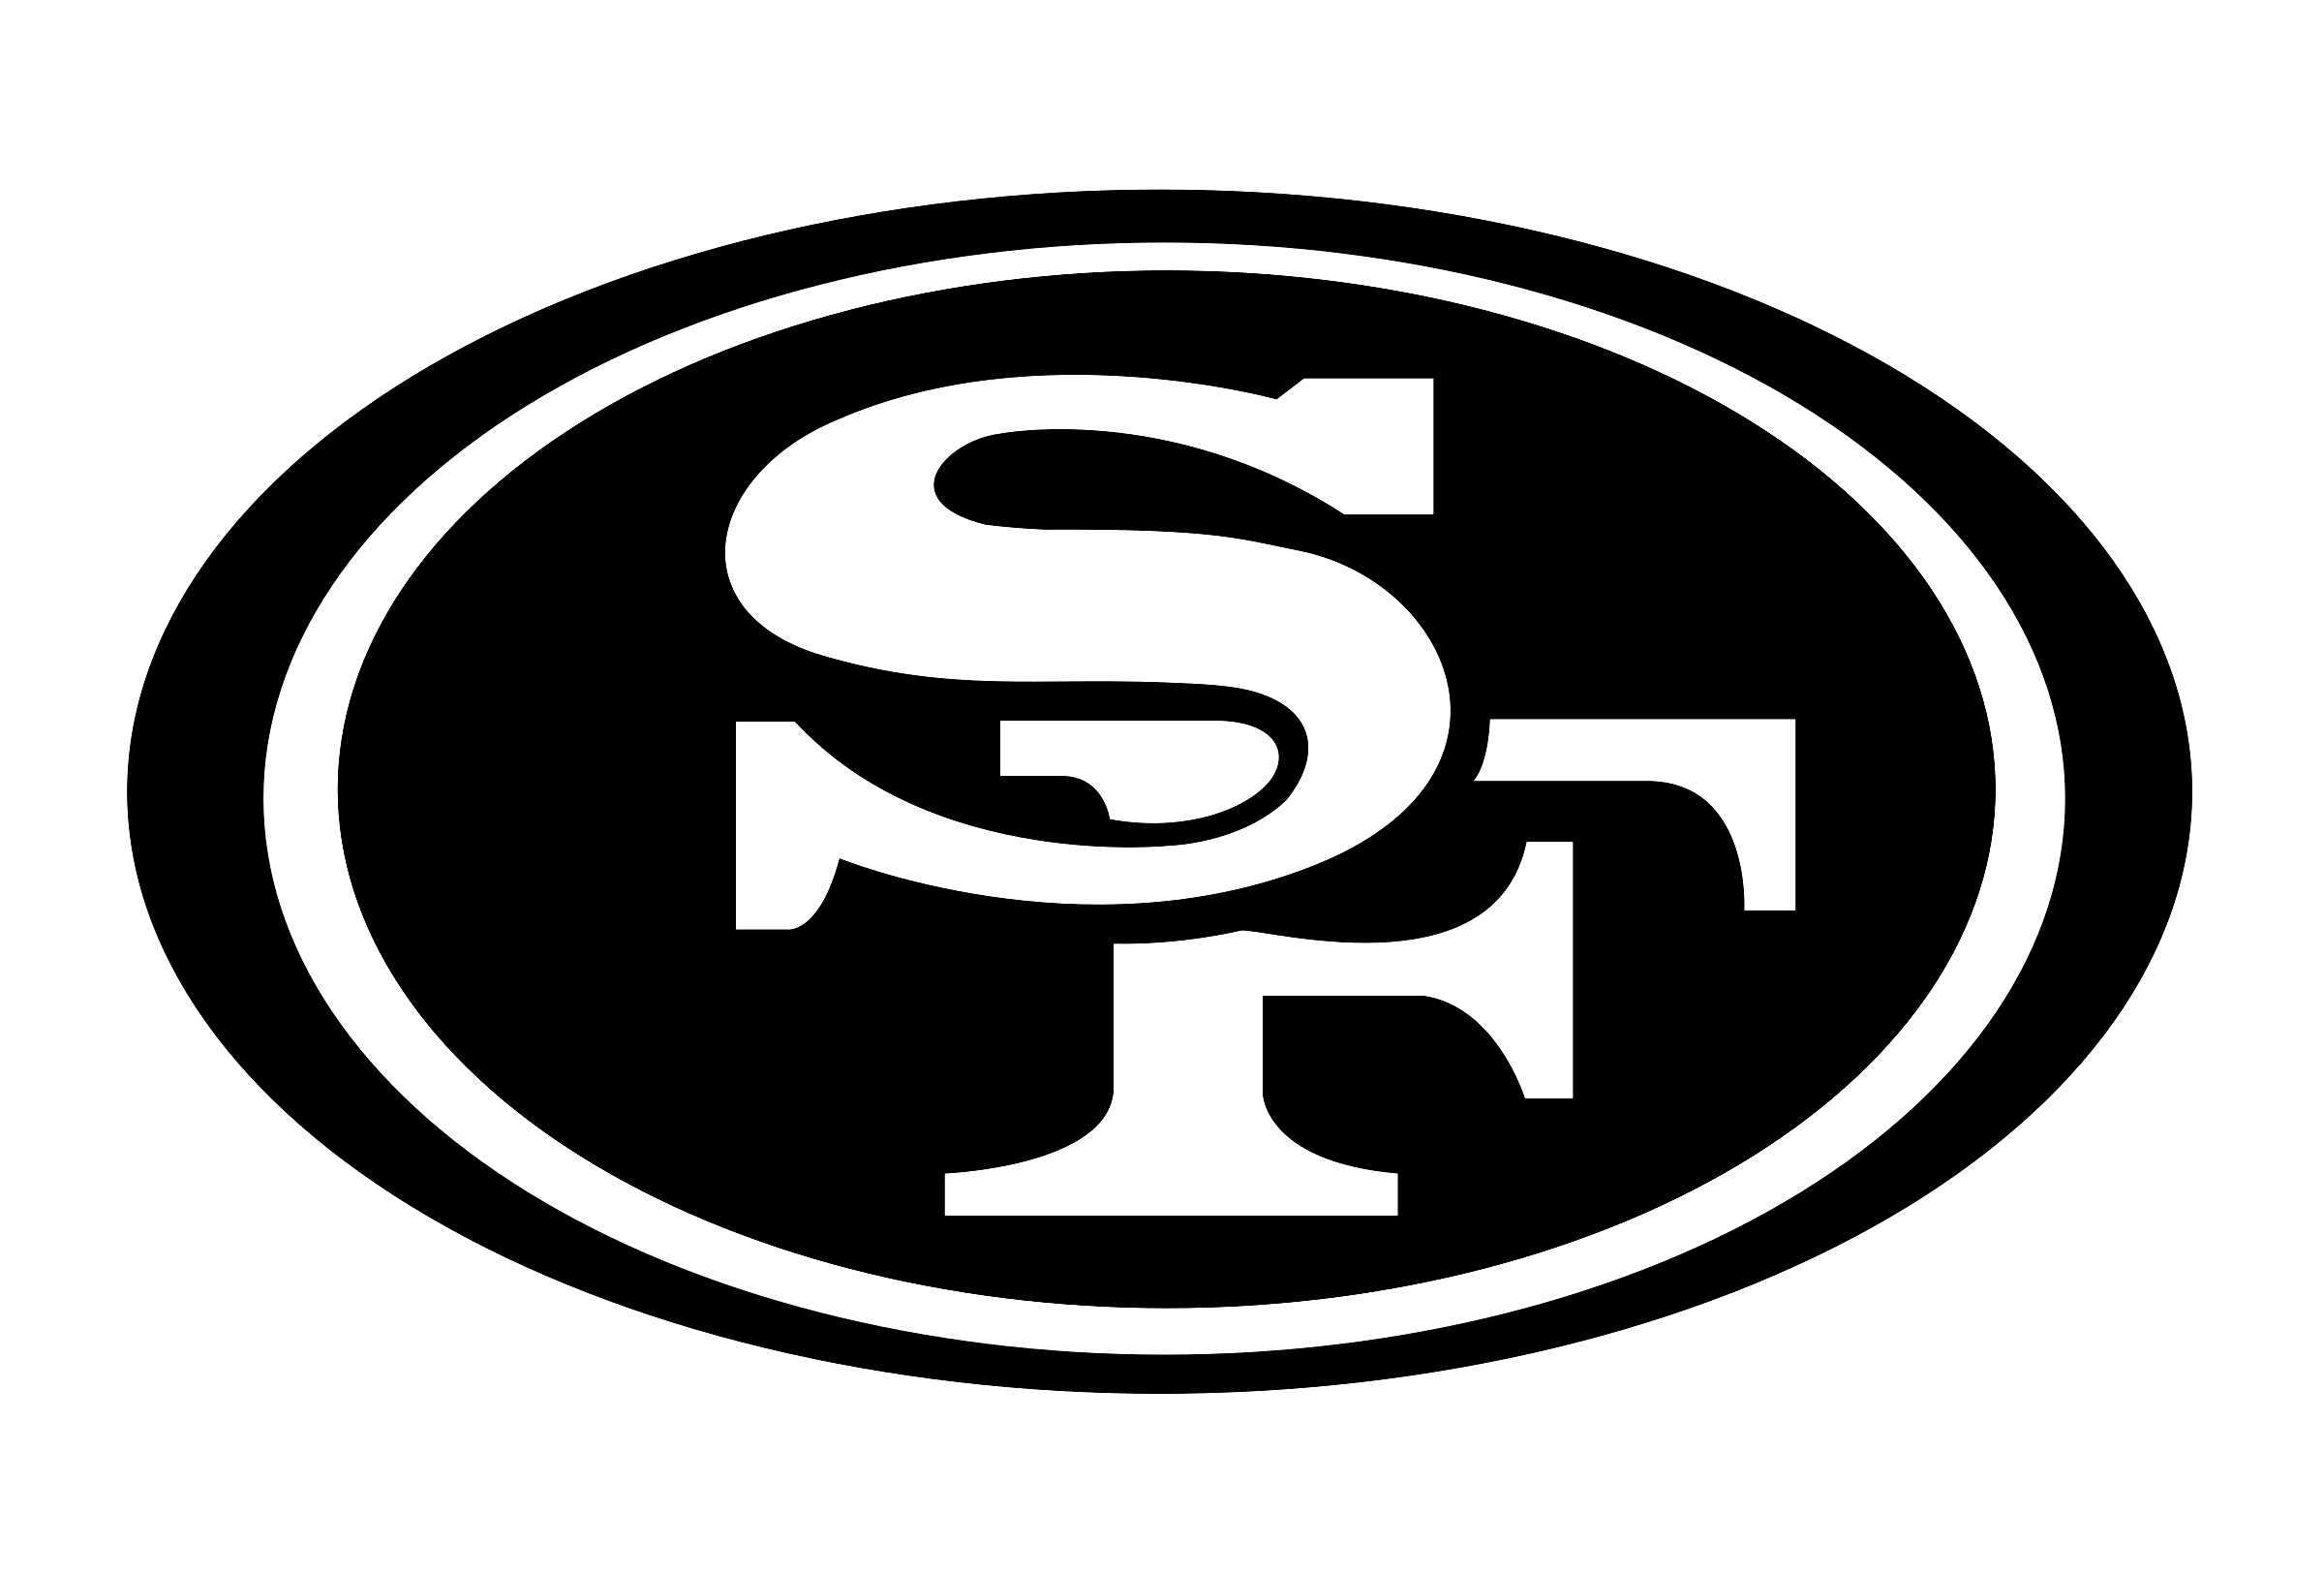 san francisco 49ers logo png transparent svg vector freebie supply rh freebiesupply com 49ers free vector 49ers free vector